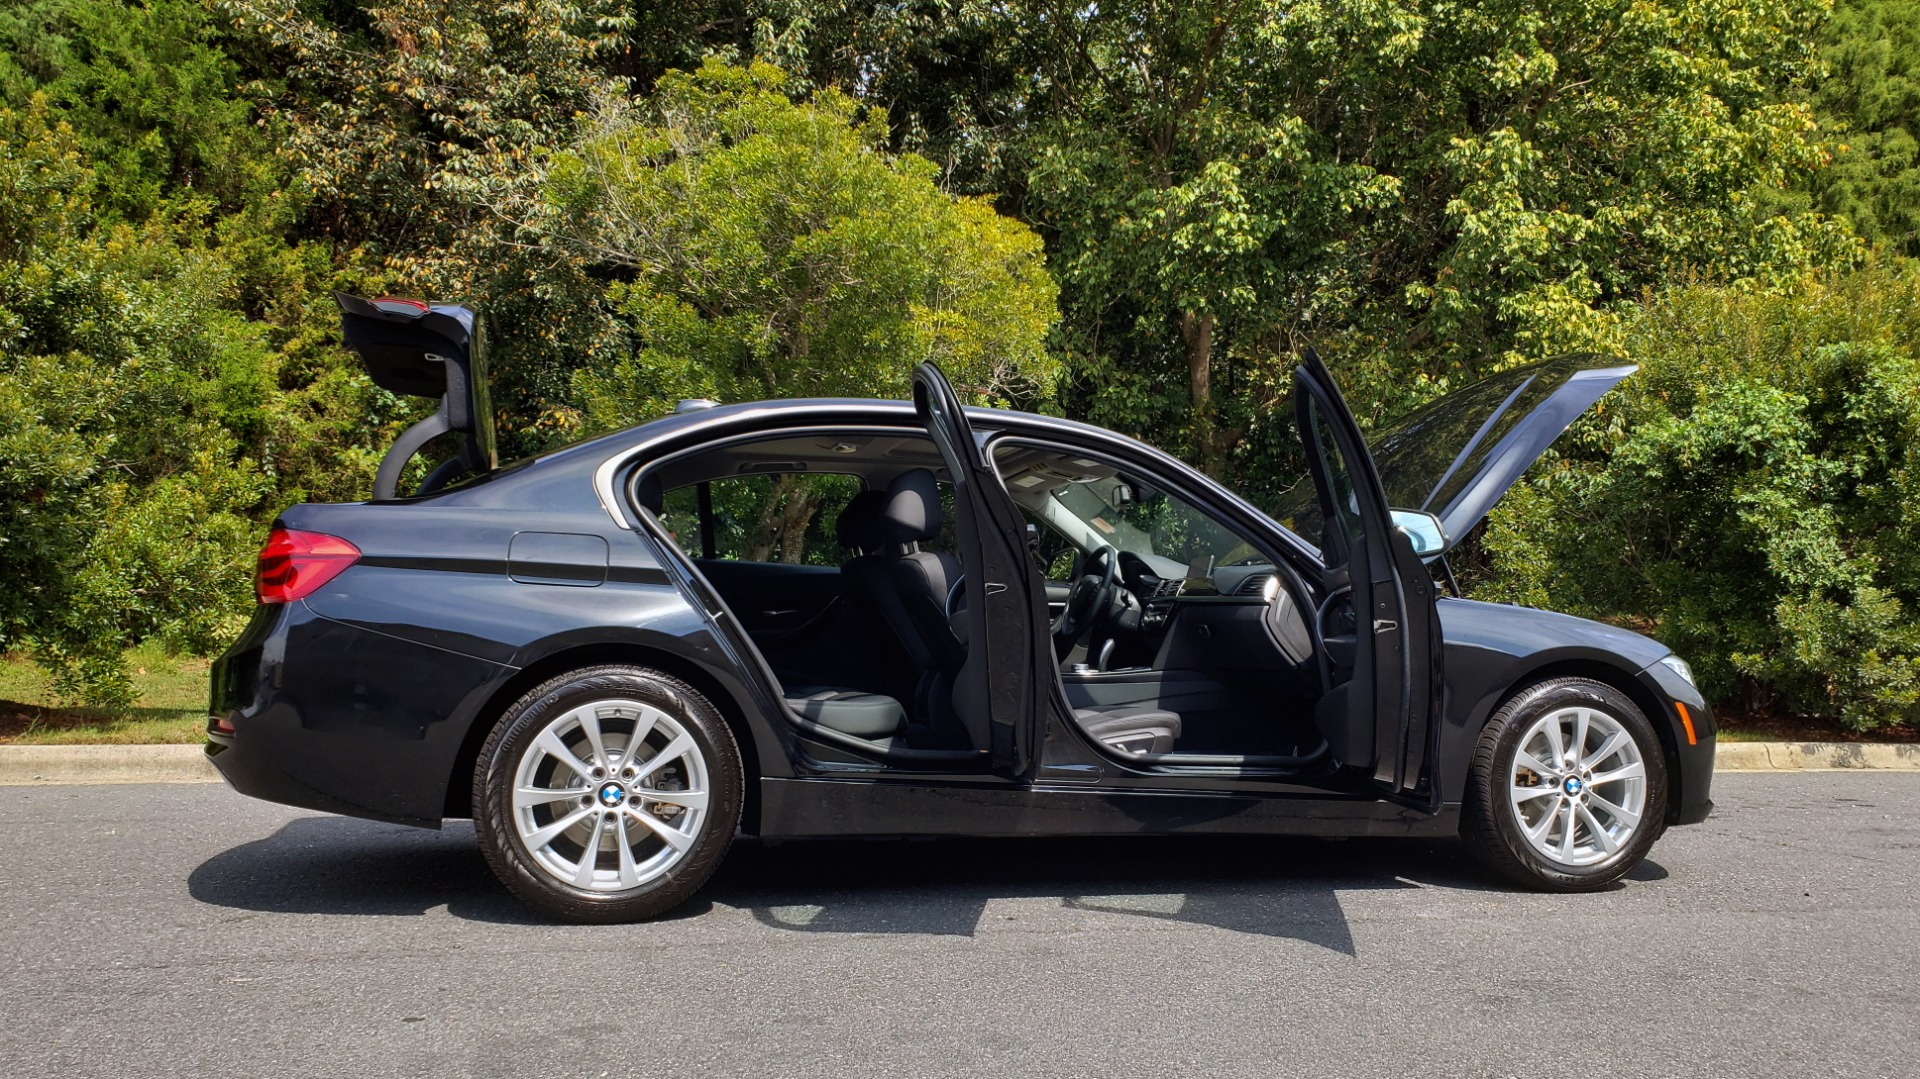 Used 2017 BMW 3 SERIES 320I XDRIVE / DRVR ASST / NAV / SUNROOF / HTD STS / REARVIEW for sale $21,995 at Formula Imports in Charlotte NC 28227 9